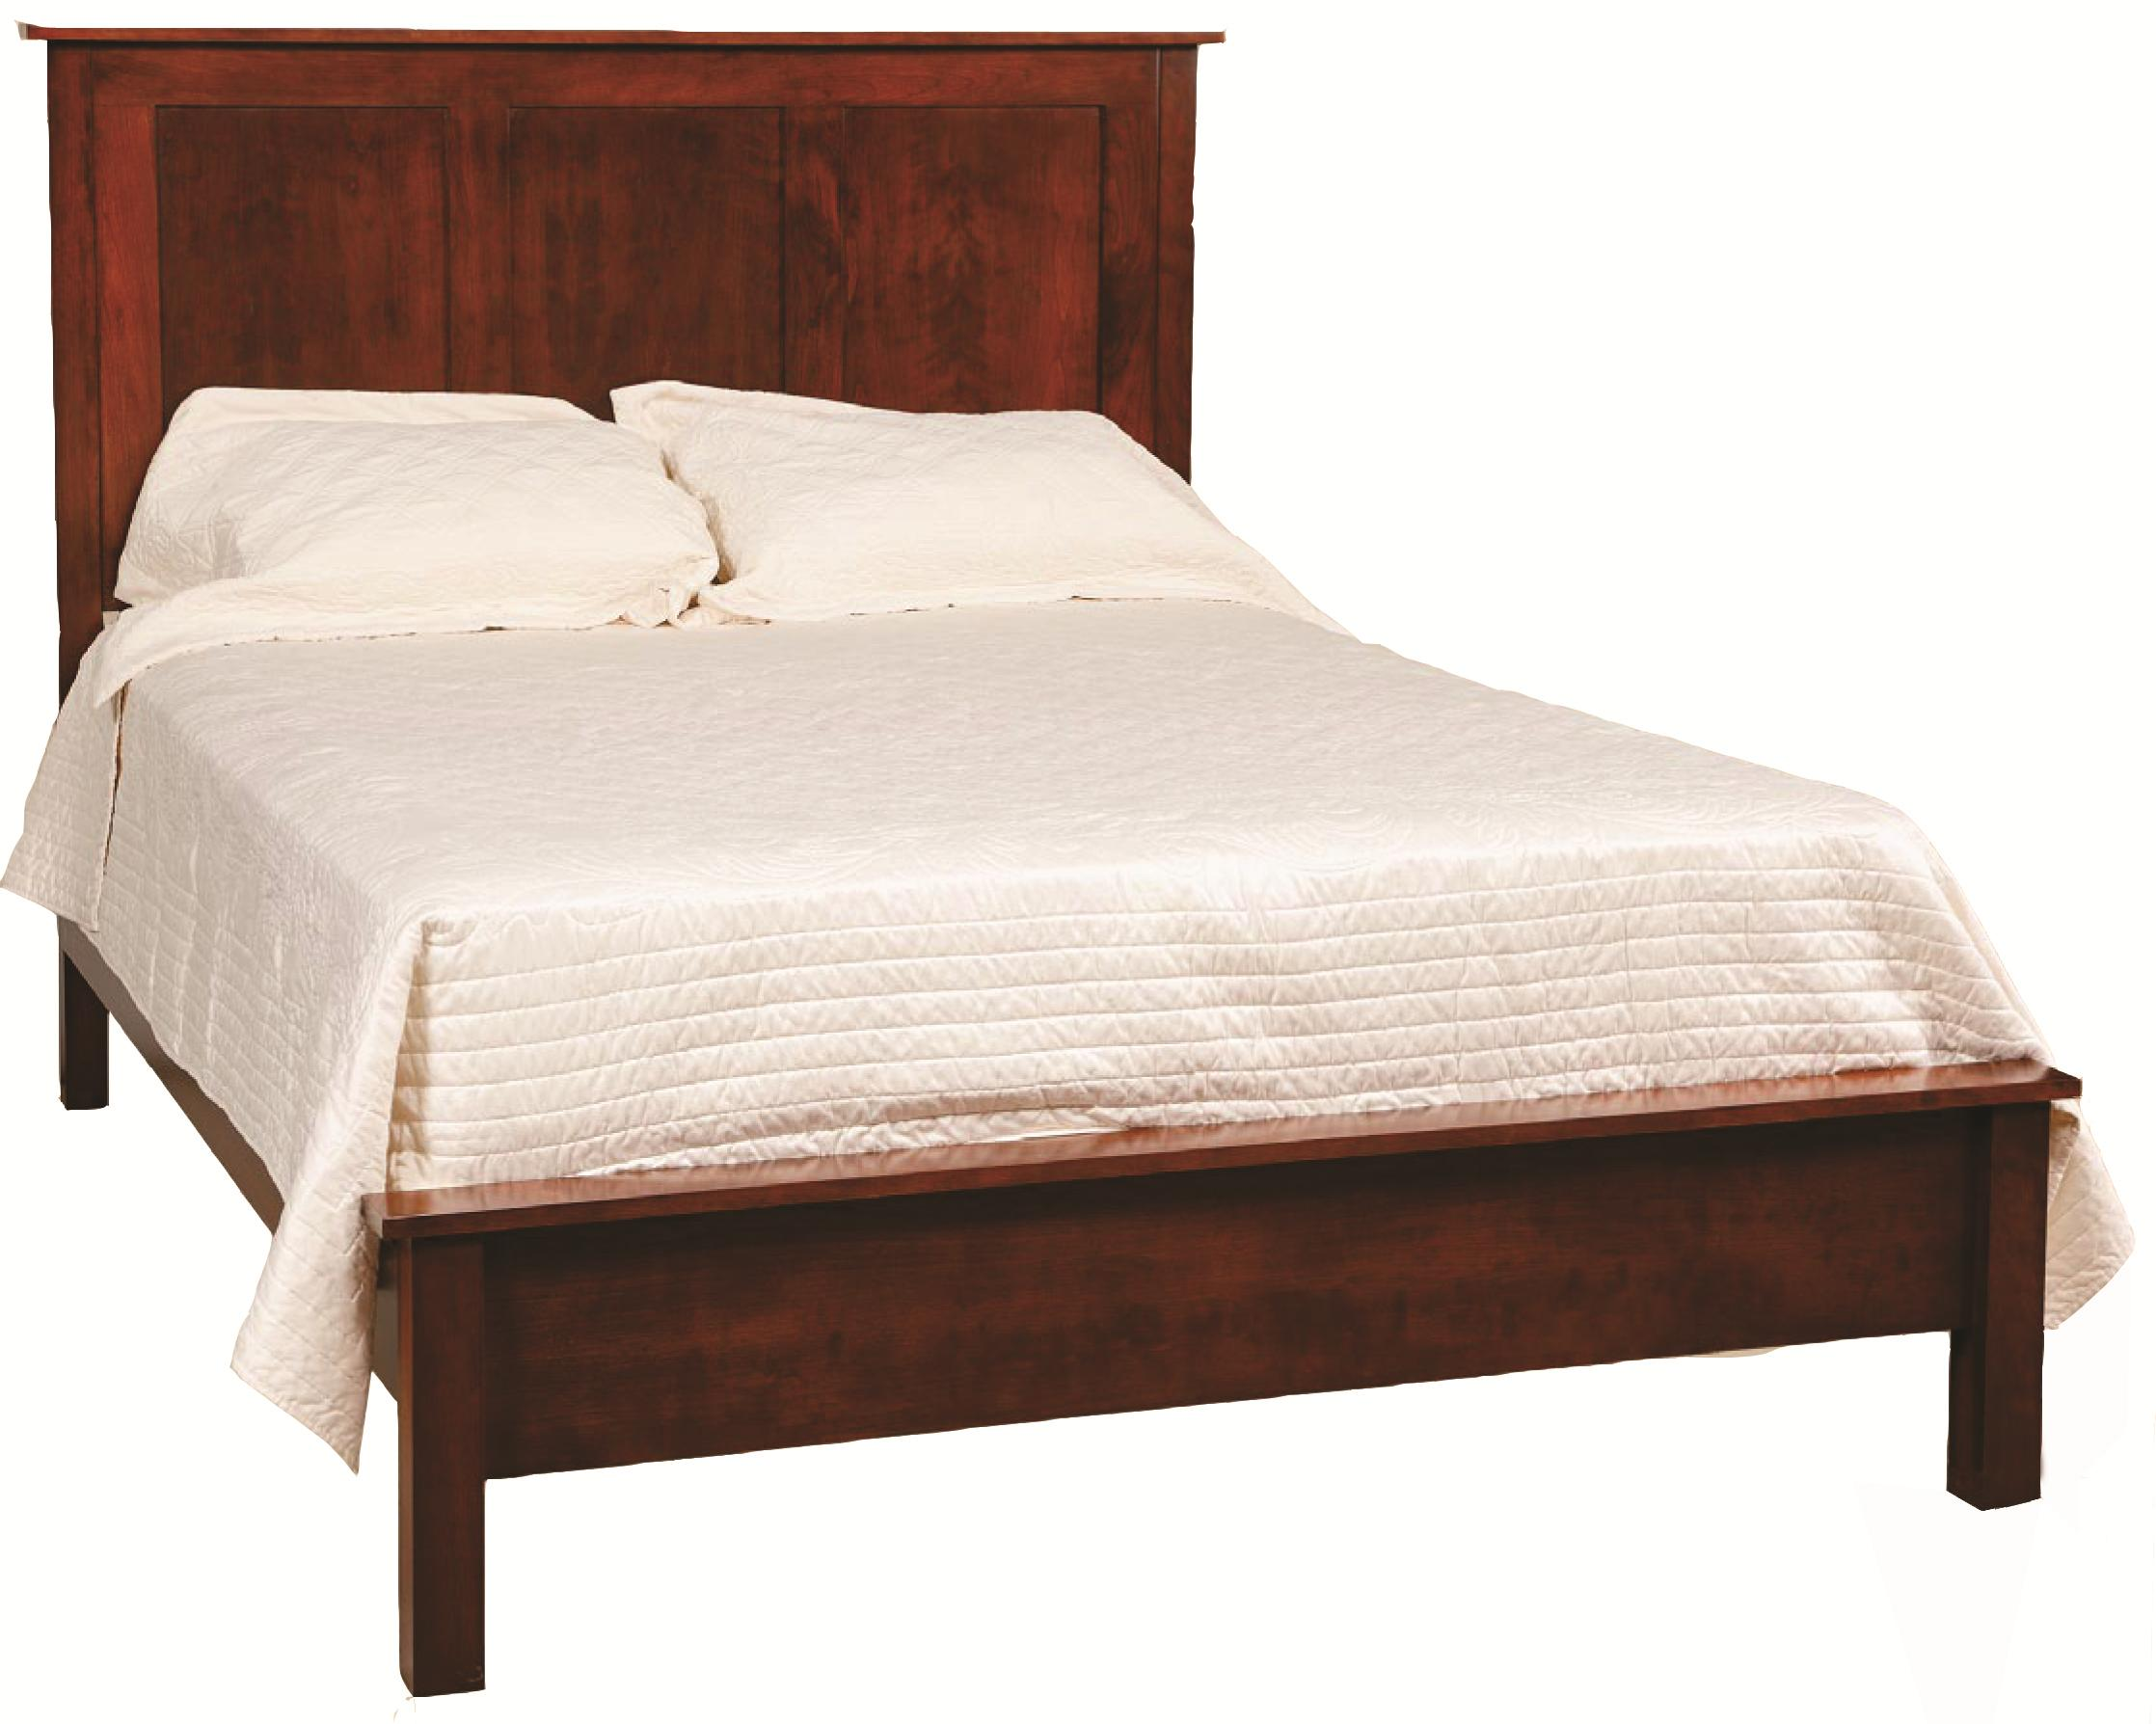 Concord  Twin Frame Bed by Daniel's Amish at Saugerties Furniture Mart